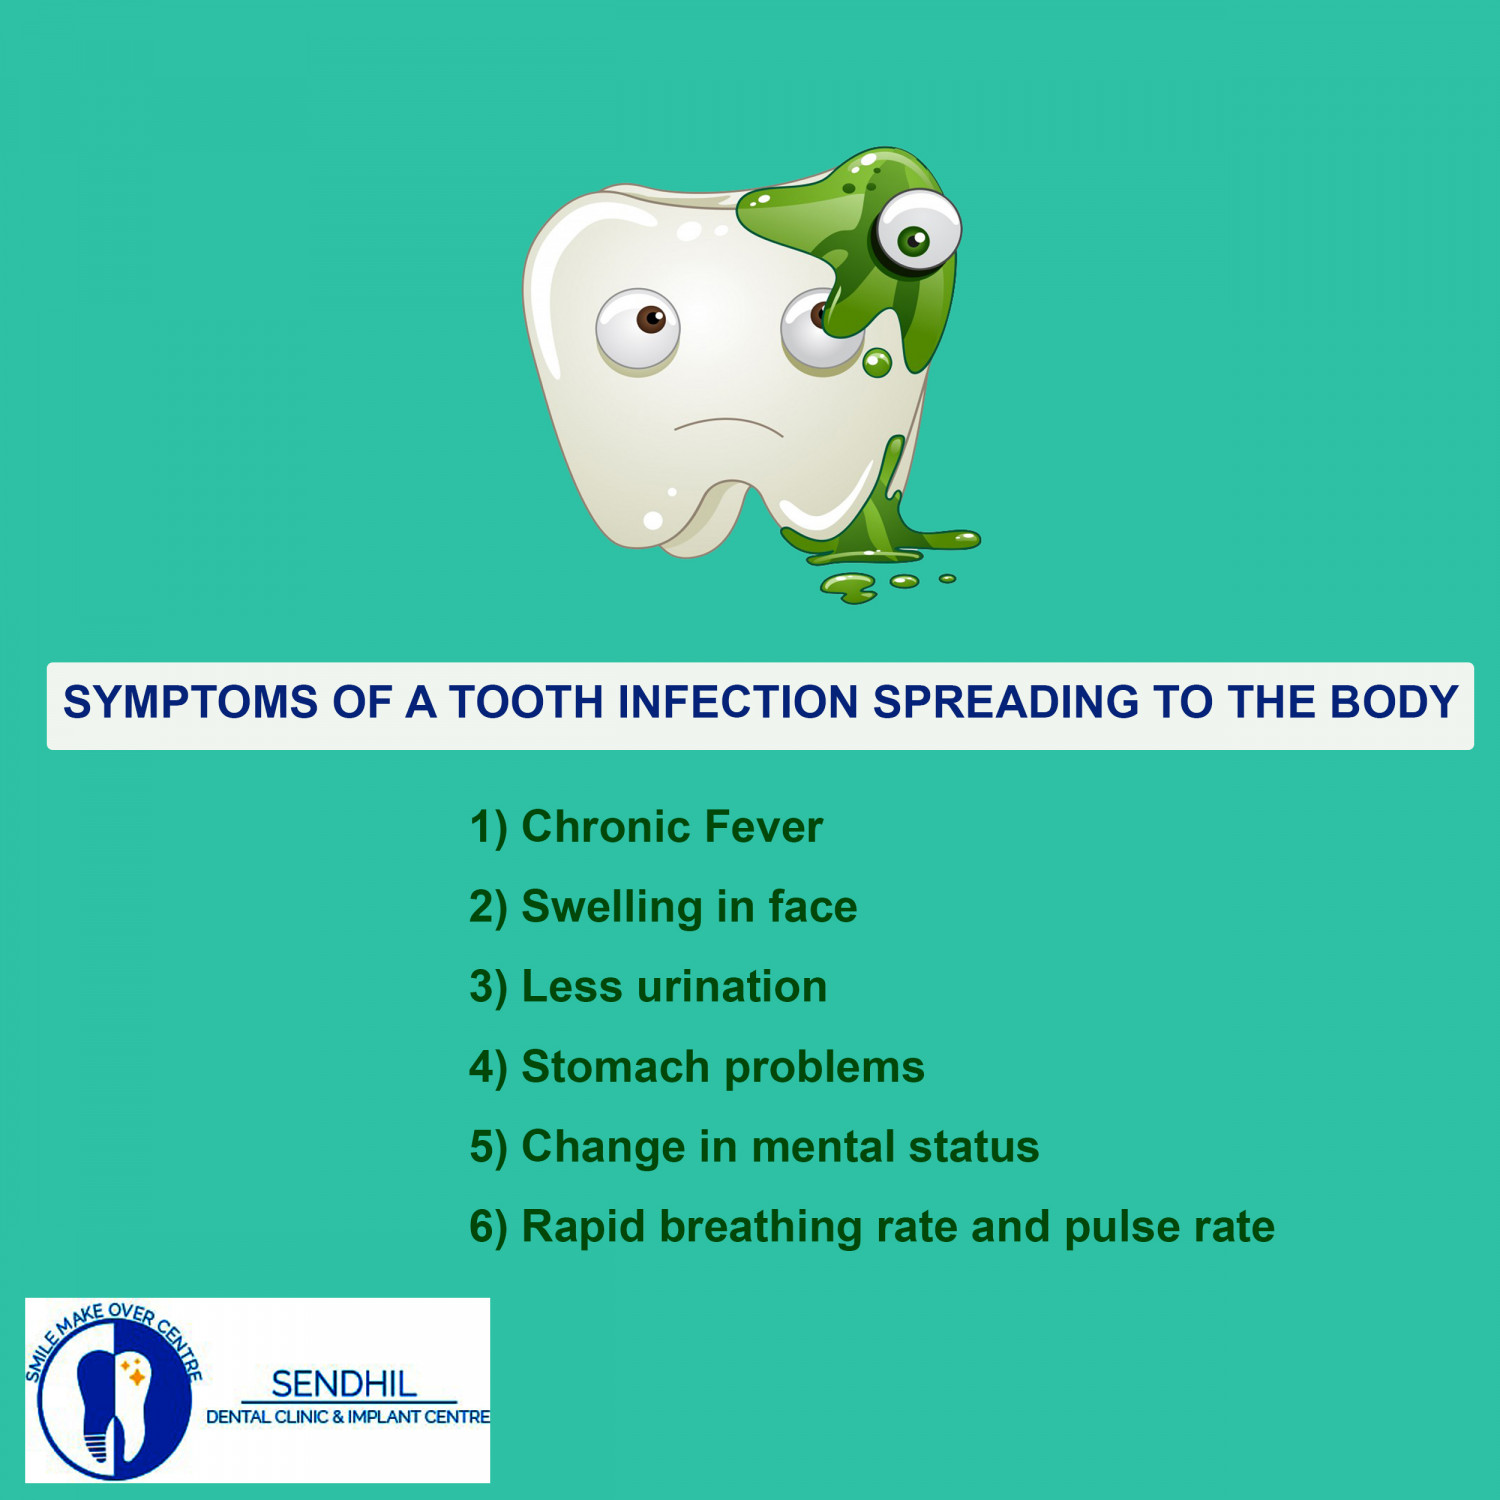 Symptoms to detect an oral infection is spreading to your body Infographic